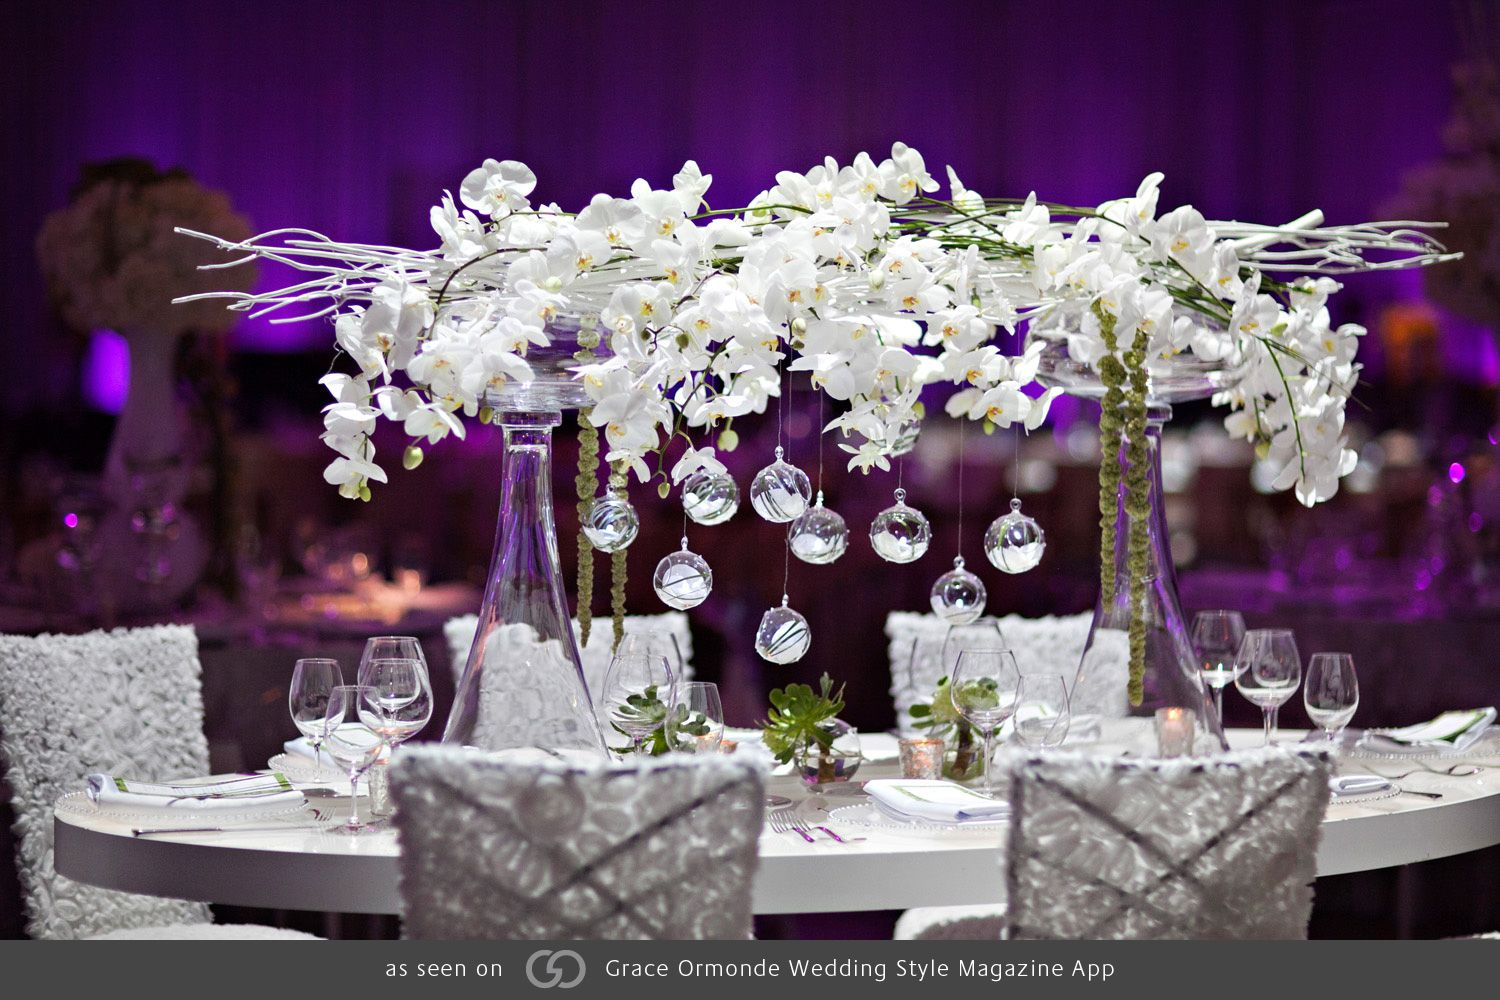 Classic elegance with modern touches create the perfect harmony. @grace_ormonde @wedding_style